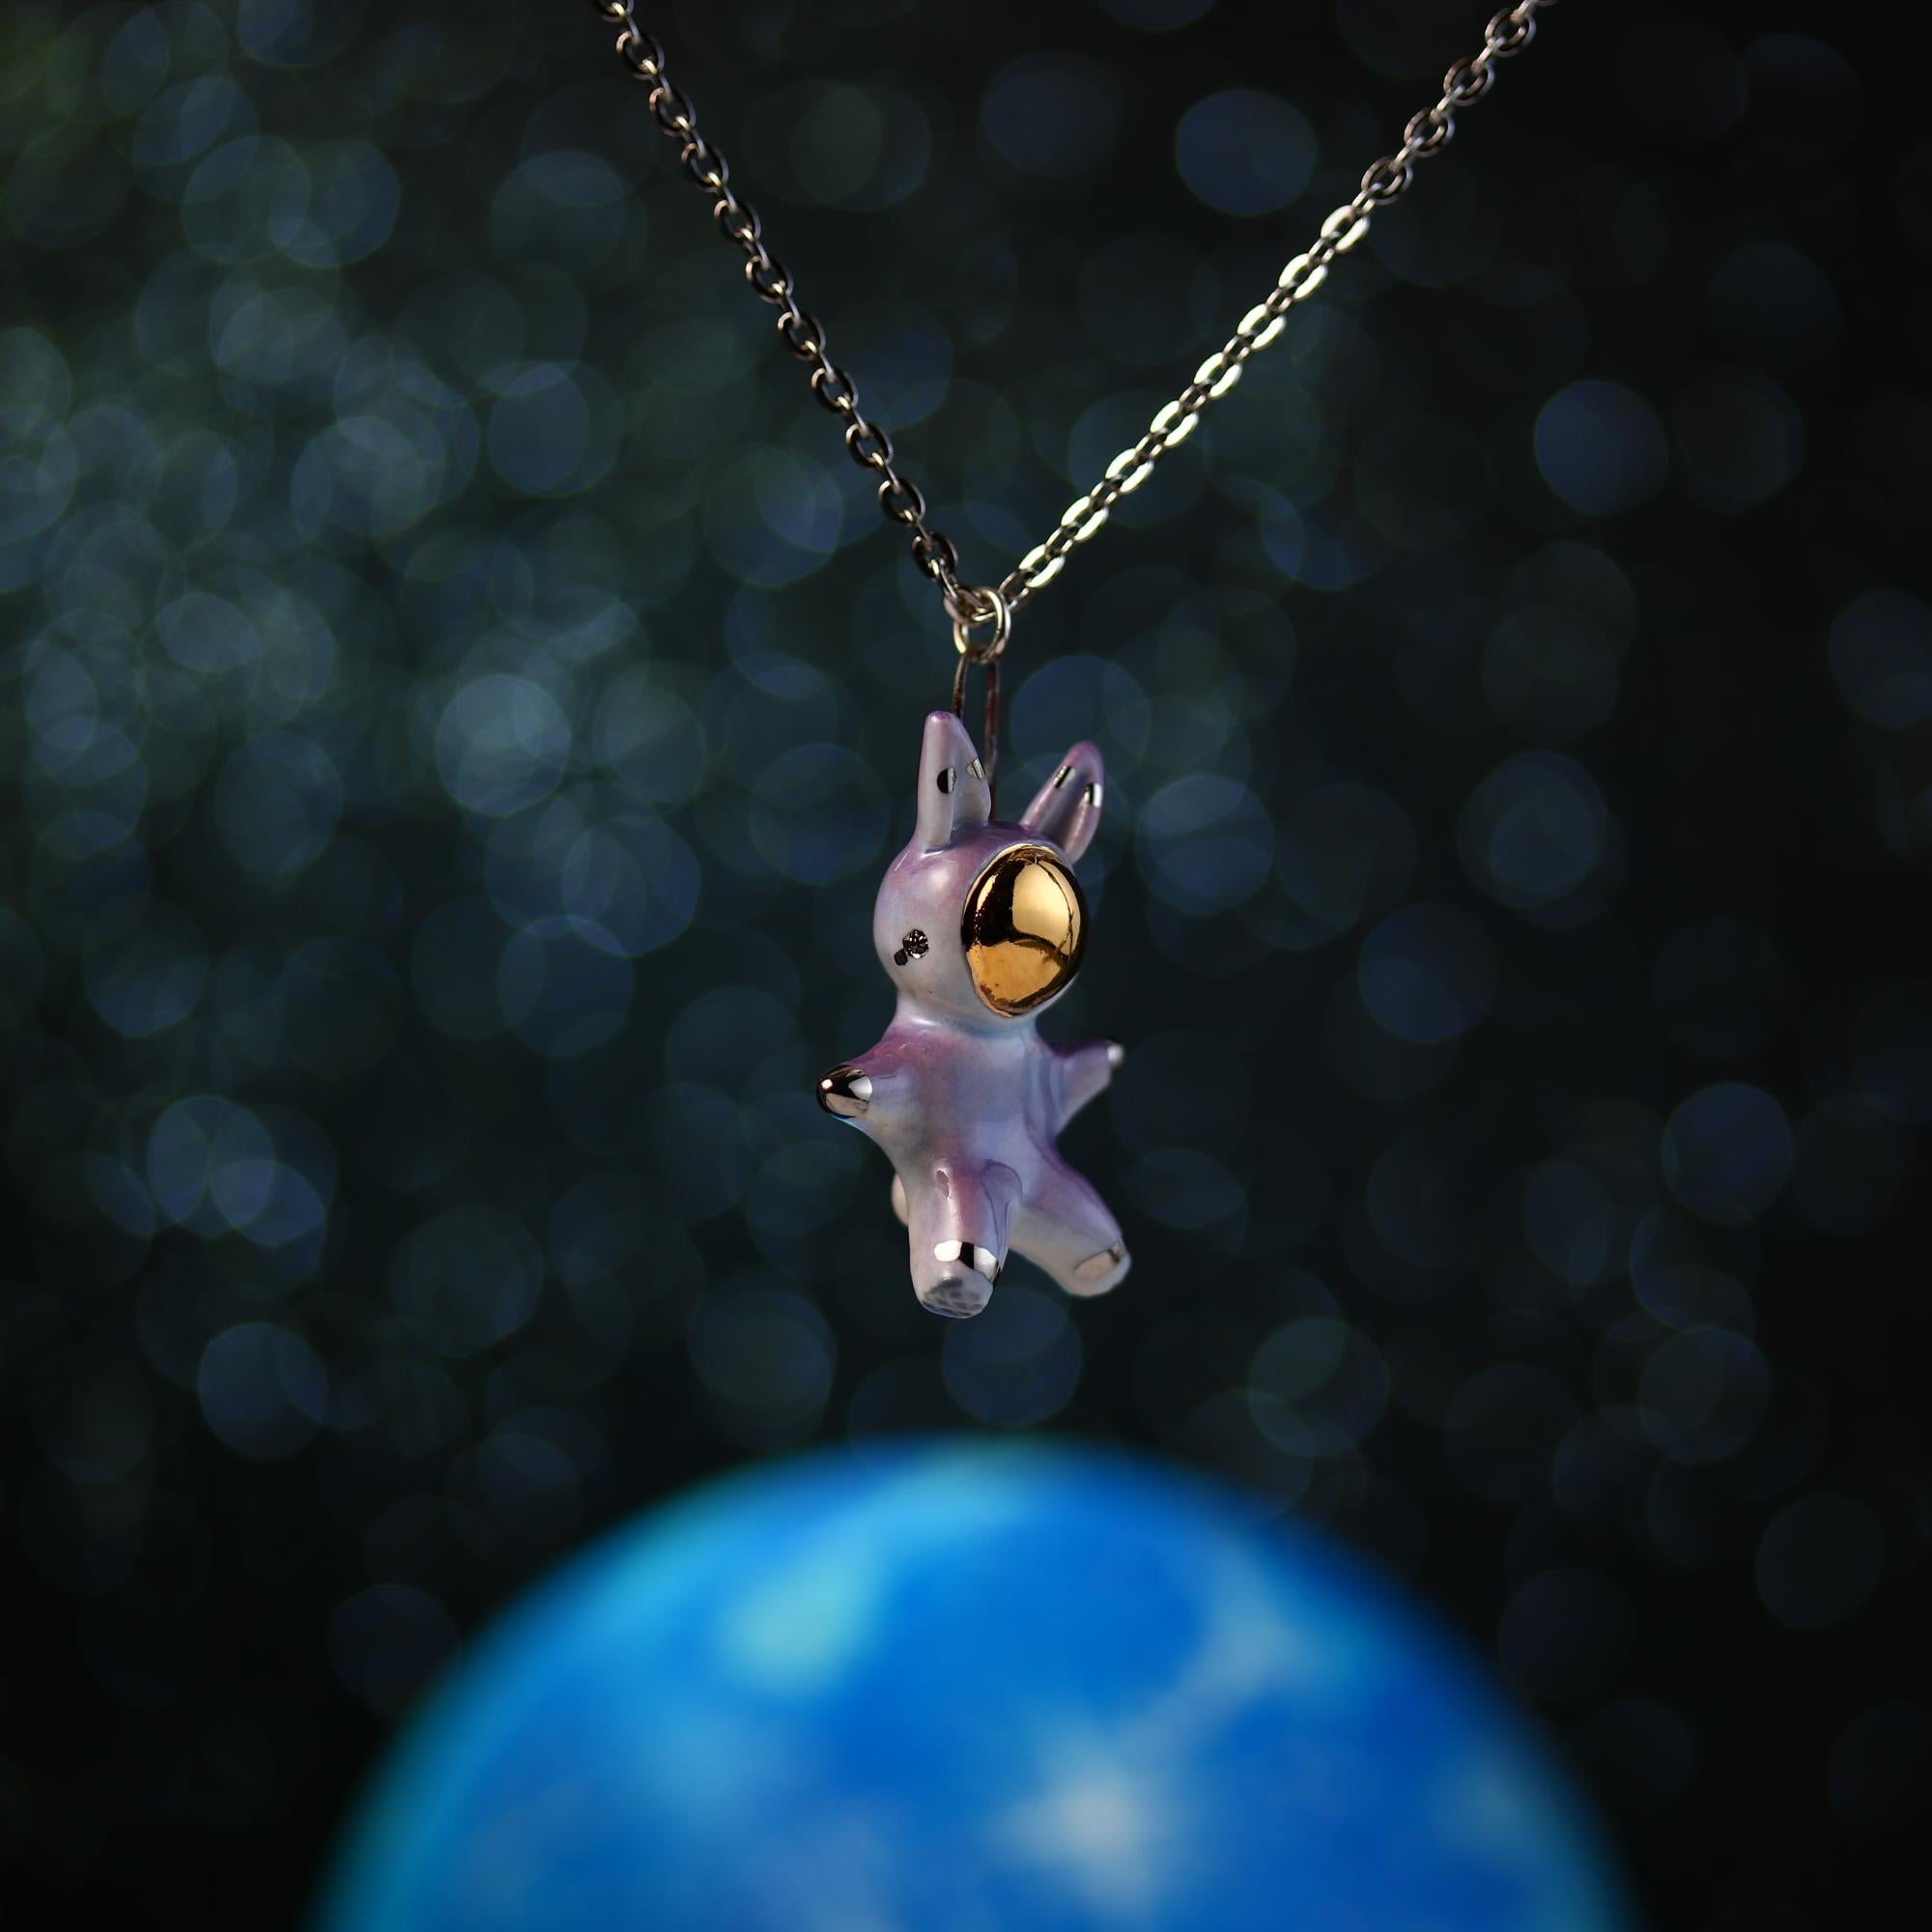 Little Bunnynaut Necklace